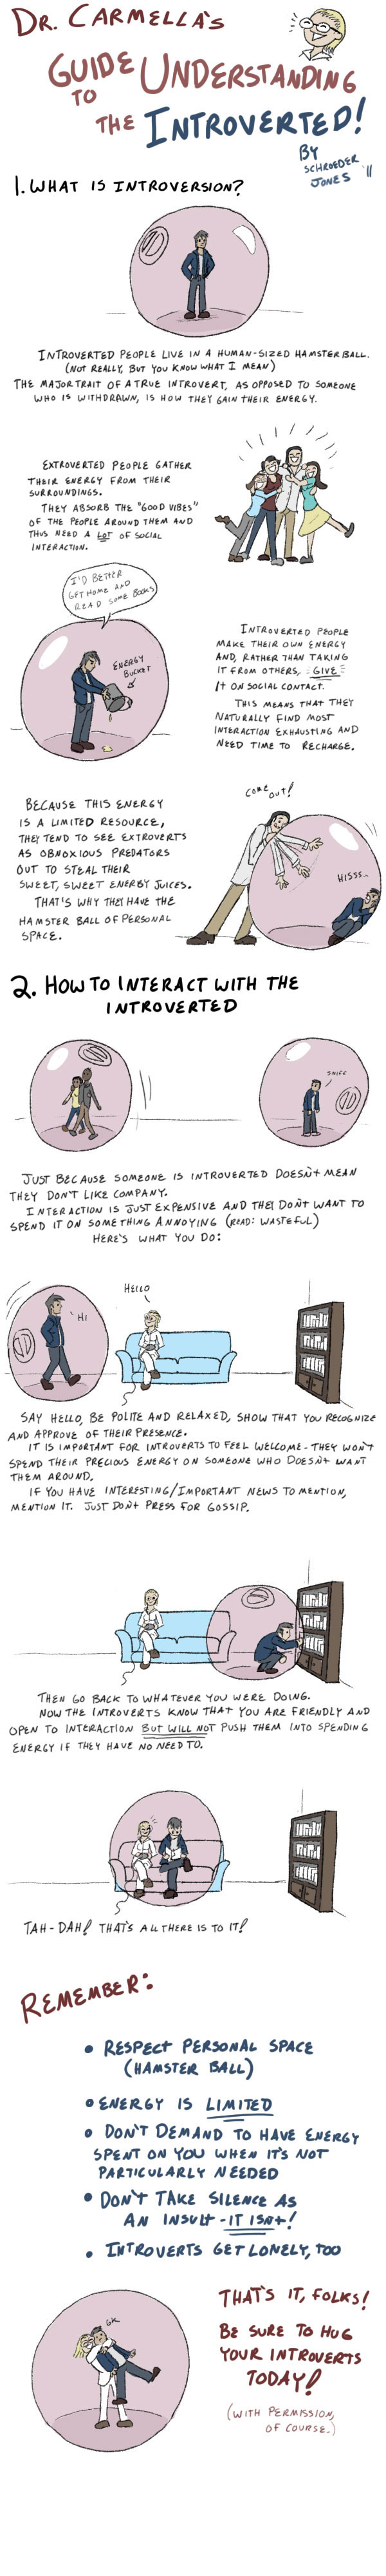 how-to-live-with-introverts